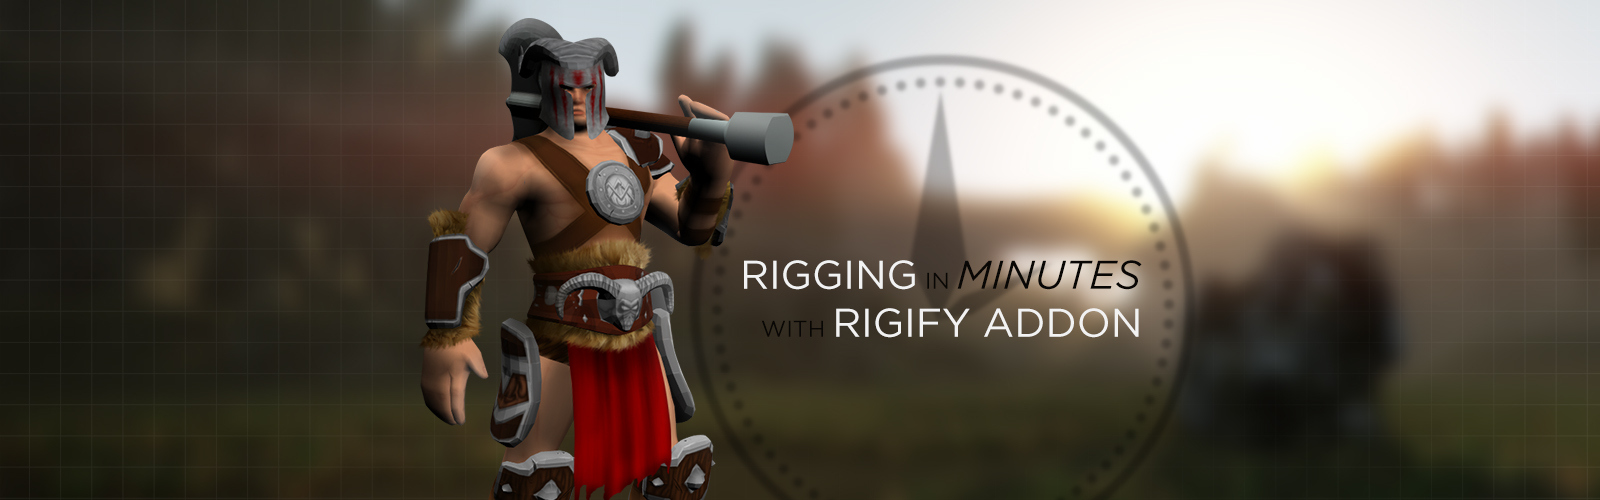 Rigging in Minutes with Blender's Rigify Addon   Pluralsight